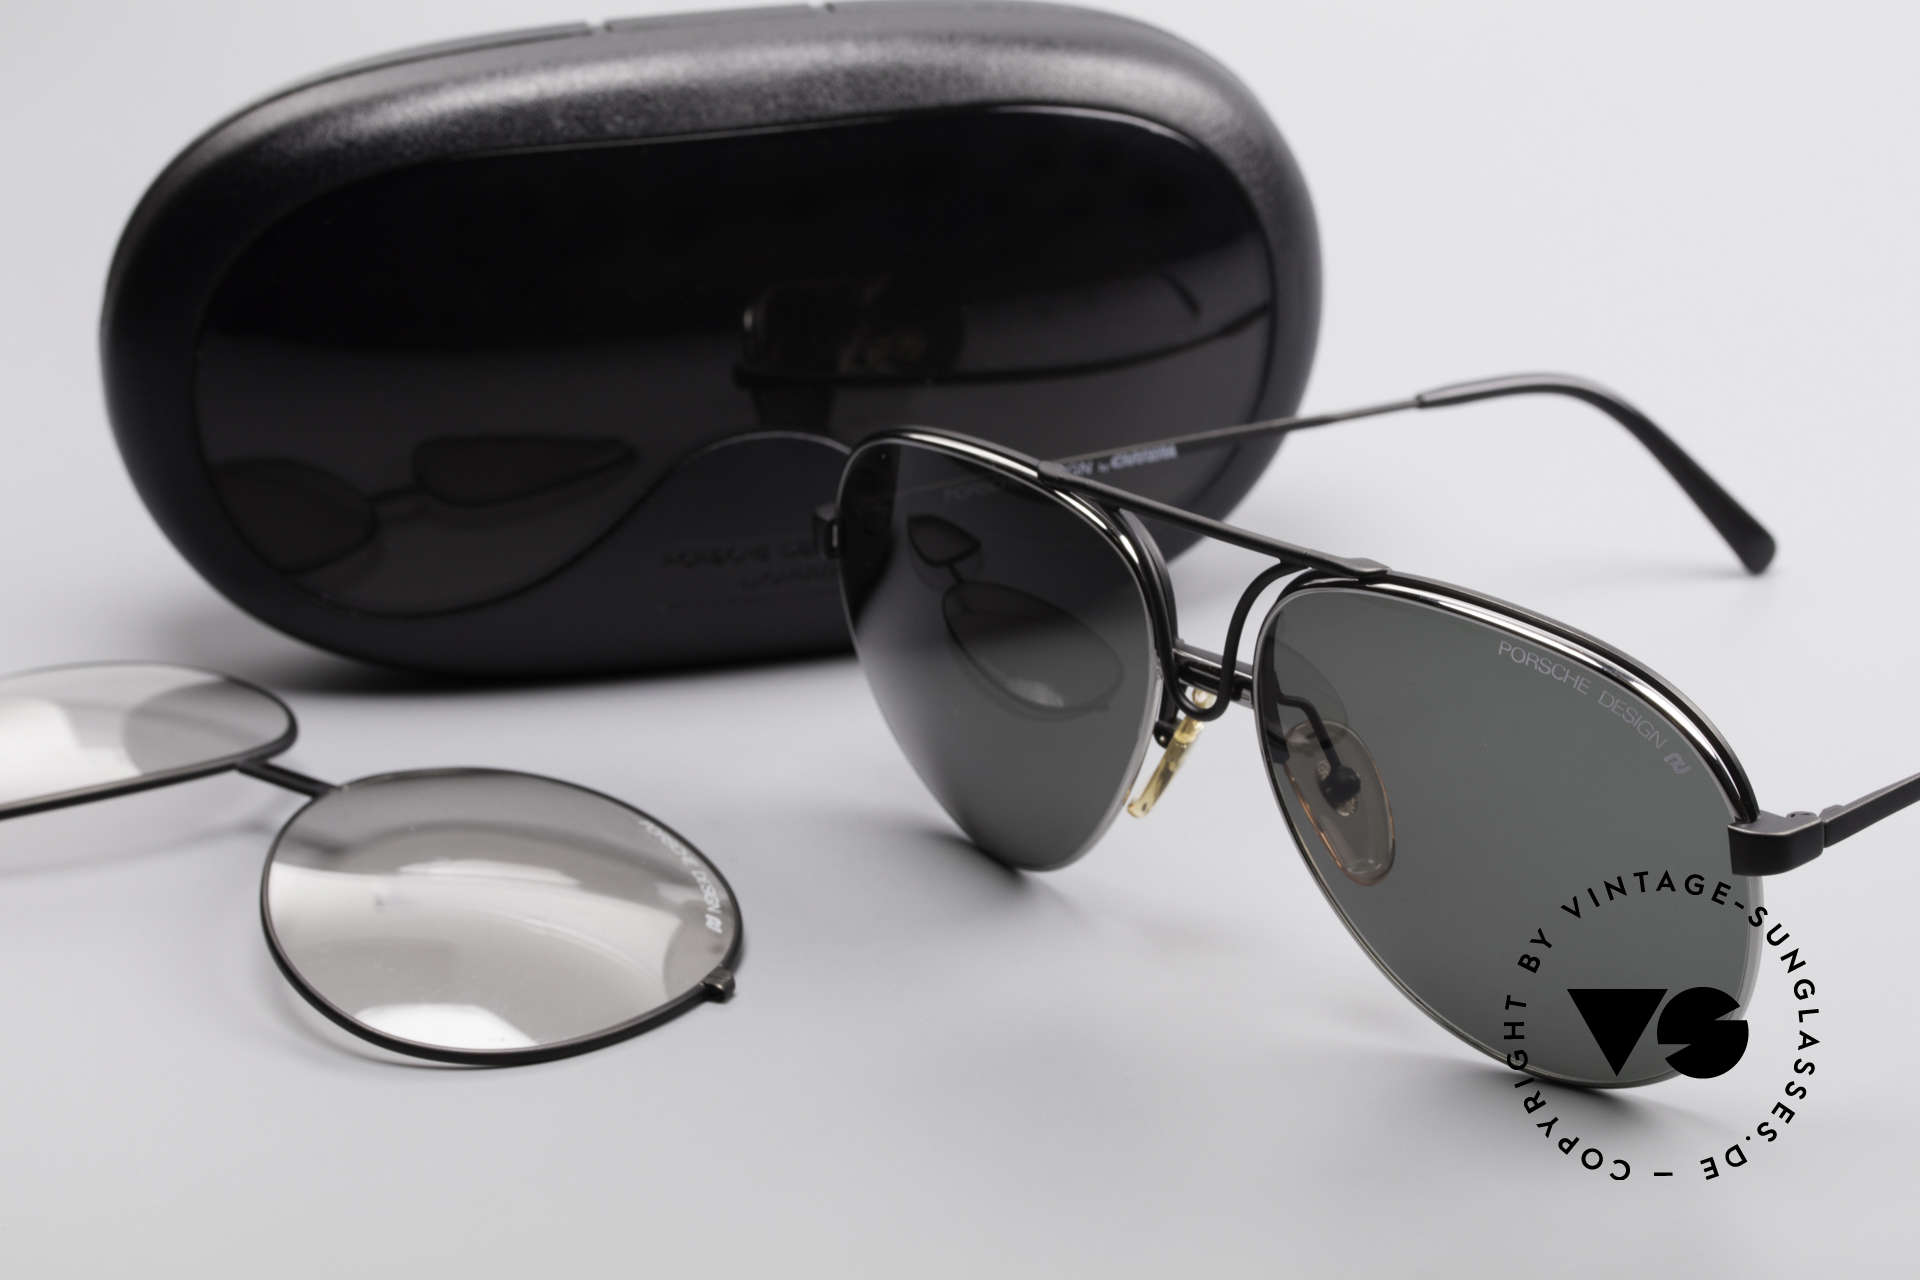 Porsche 5657 Interchangeable Sunglasses, NO RETRO EYEWEAR, but a rare old 90's original!, Made for Men